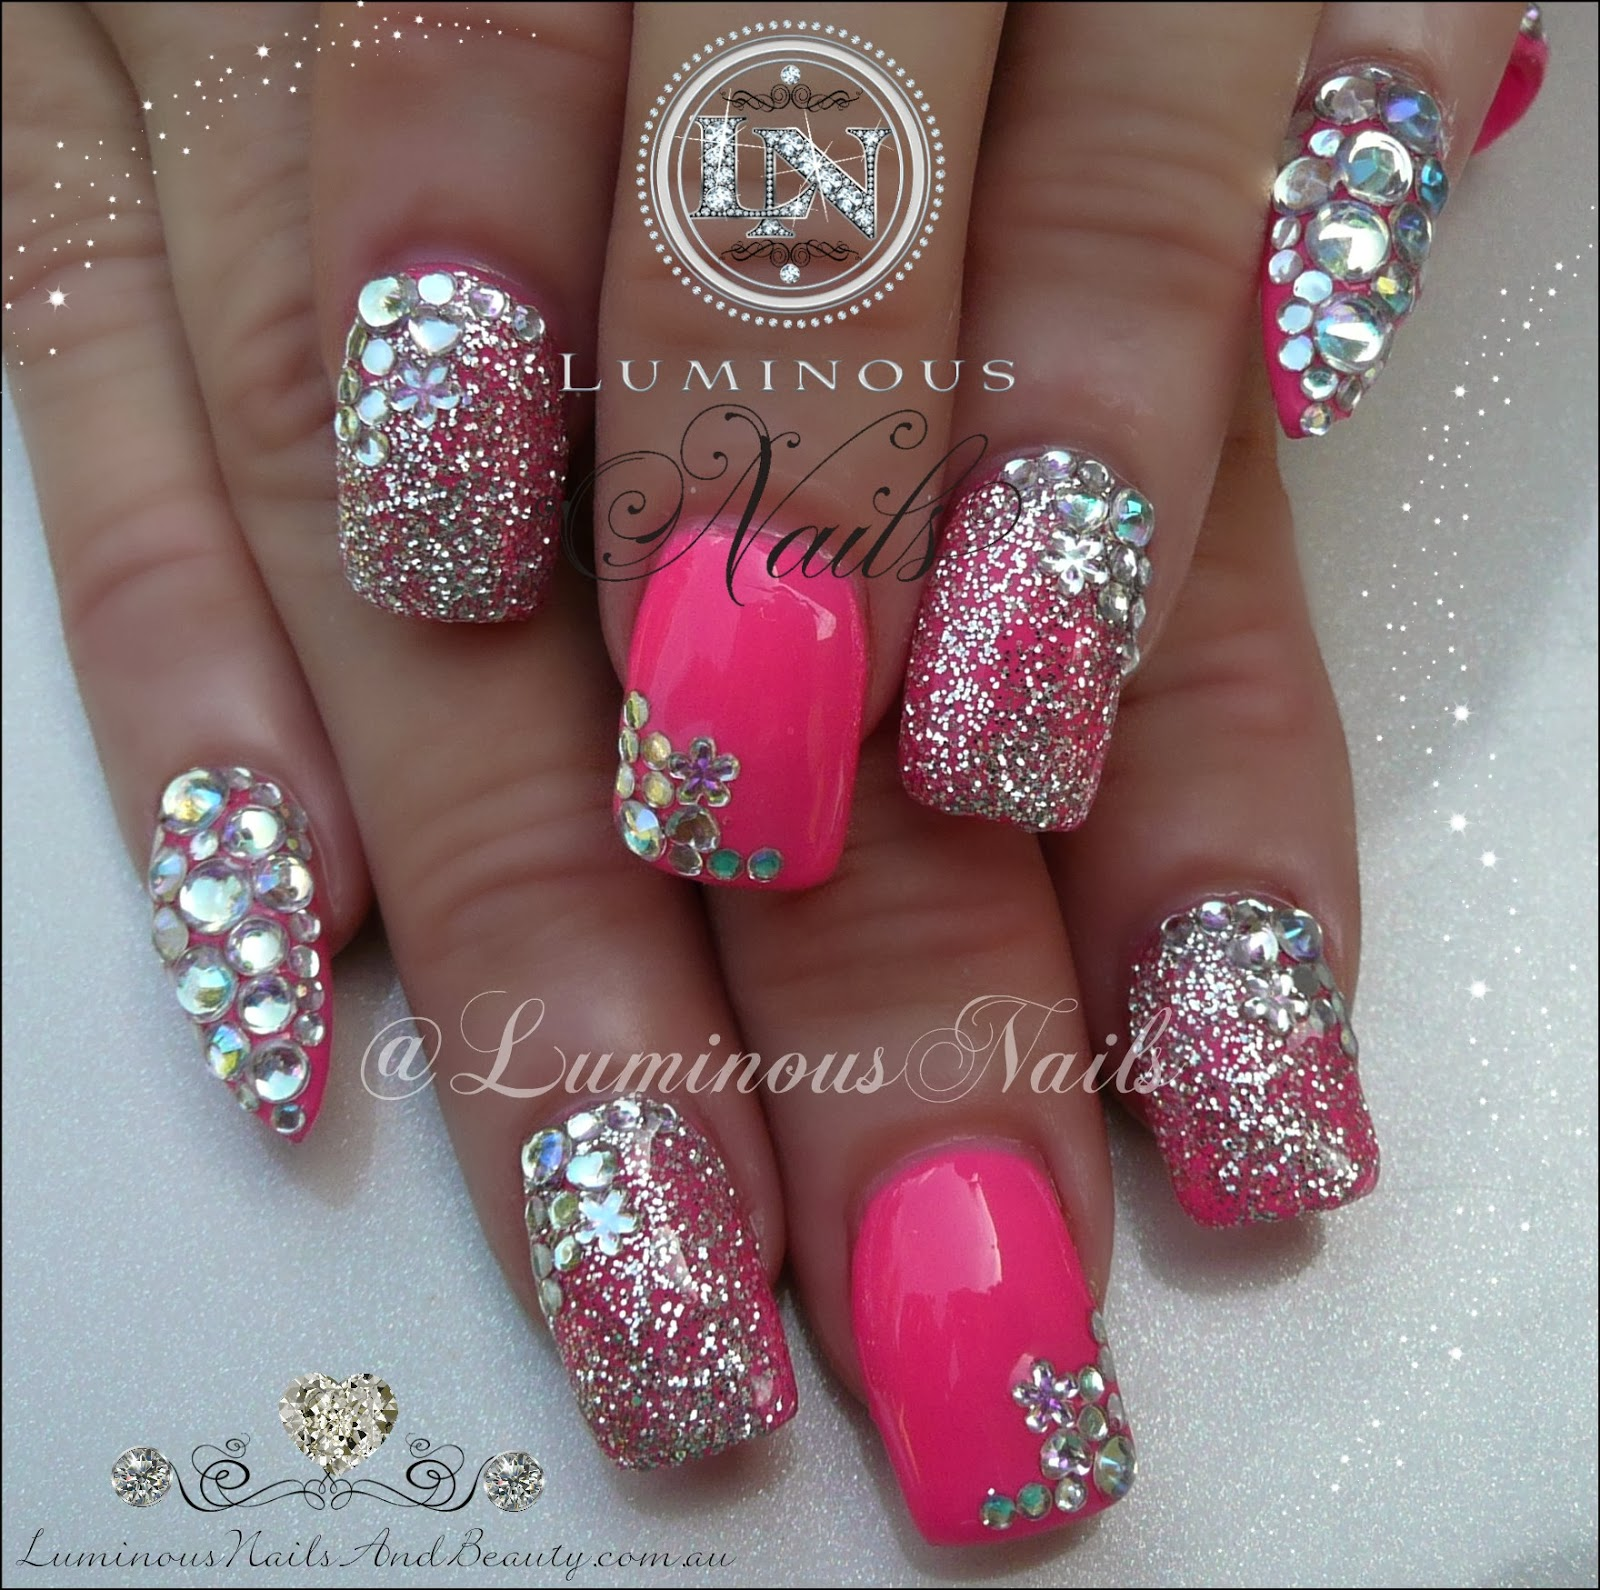 Acrylic nail designs bling pretty bling acrylic nail art designs view images luminous nails hot pink with silver bling prinsesfo Images